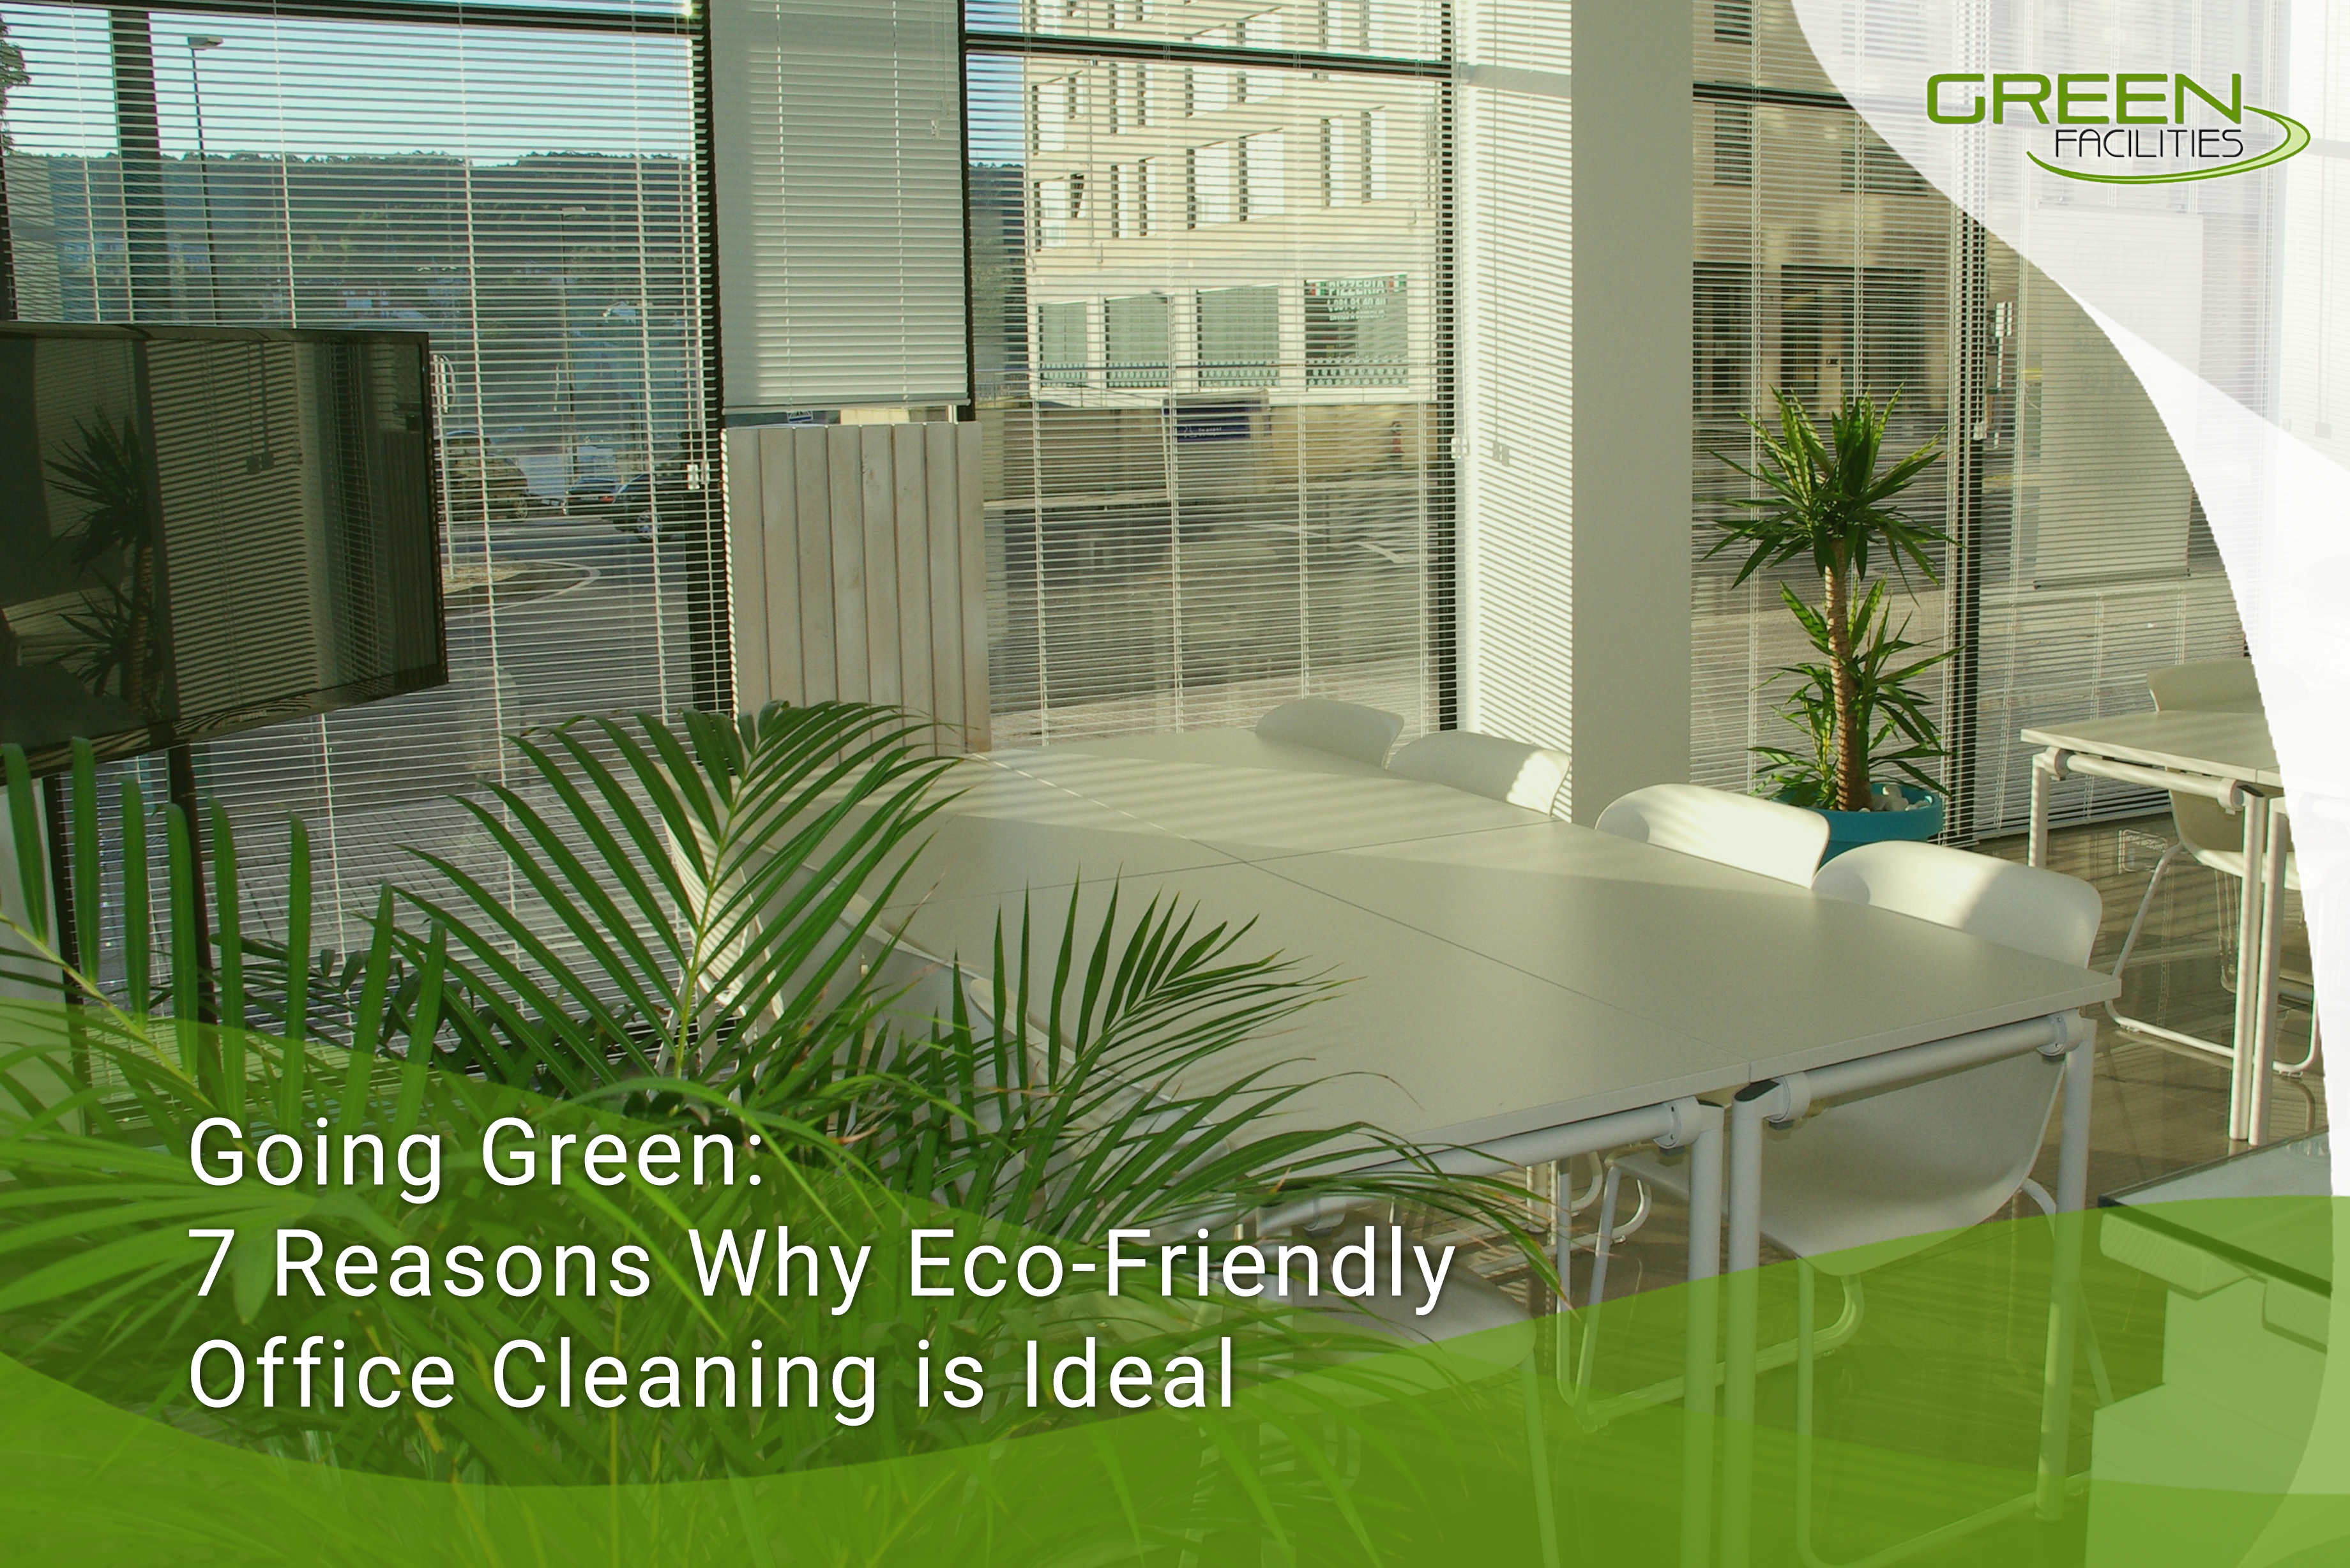 Eco-Friendly Office Cleaning: 7 Reasons Why Going Green Is Best